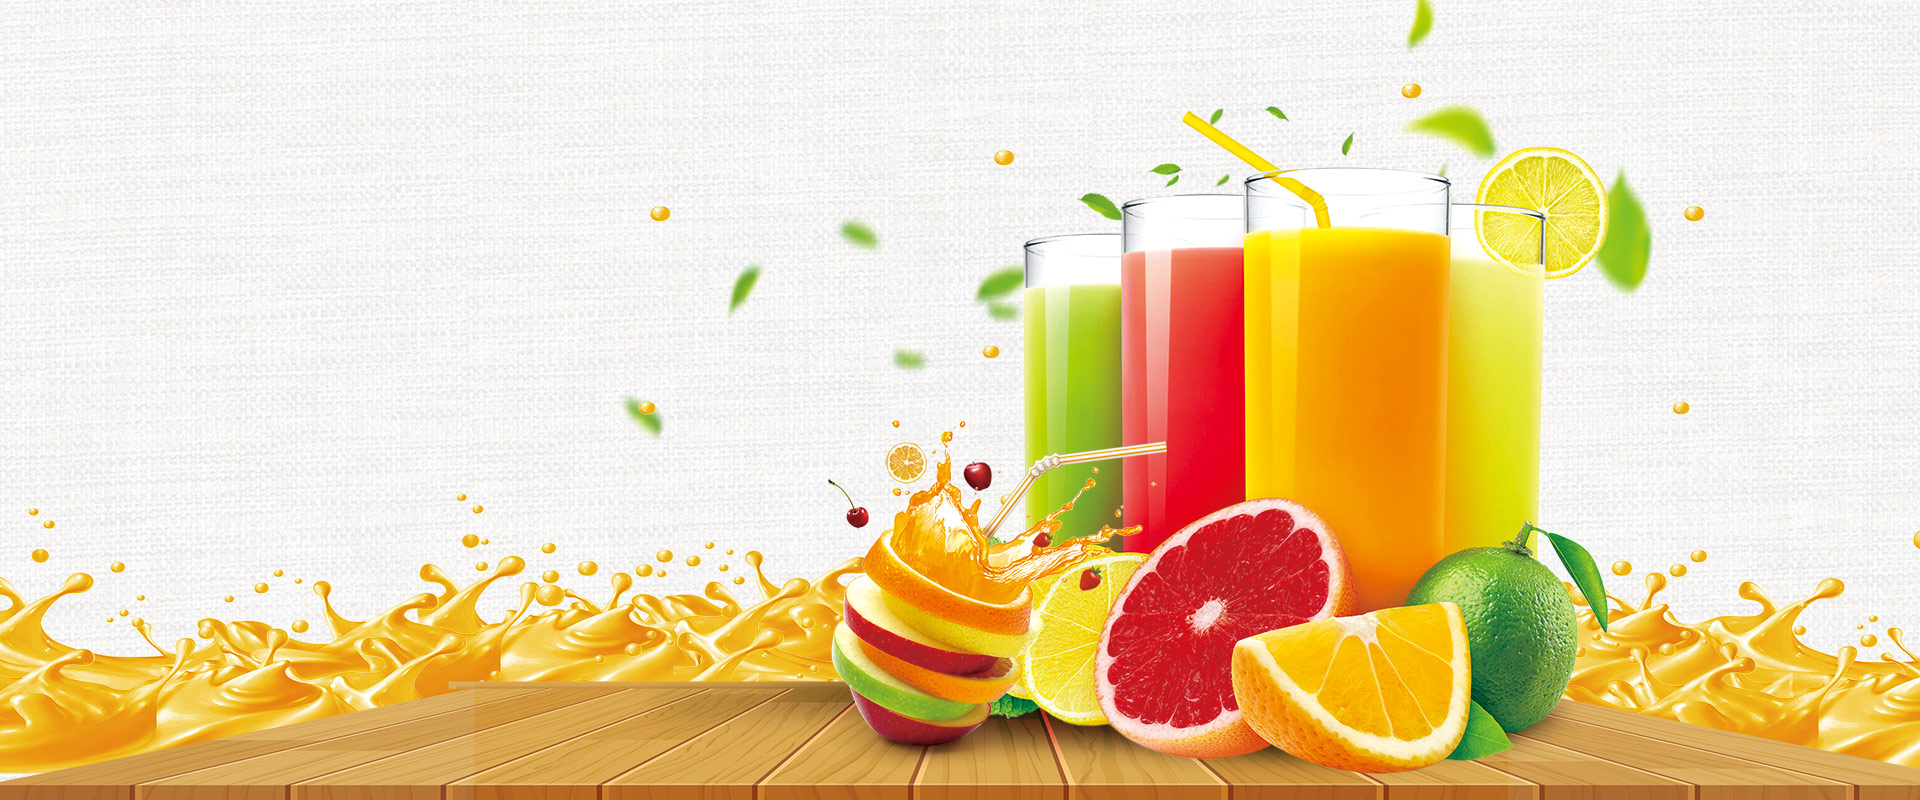 Vectors Psd Files For Orange Juice And Download Free Background Pngtree Photos